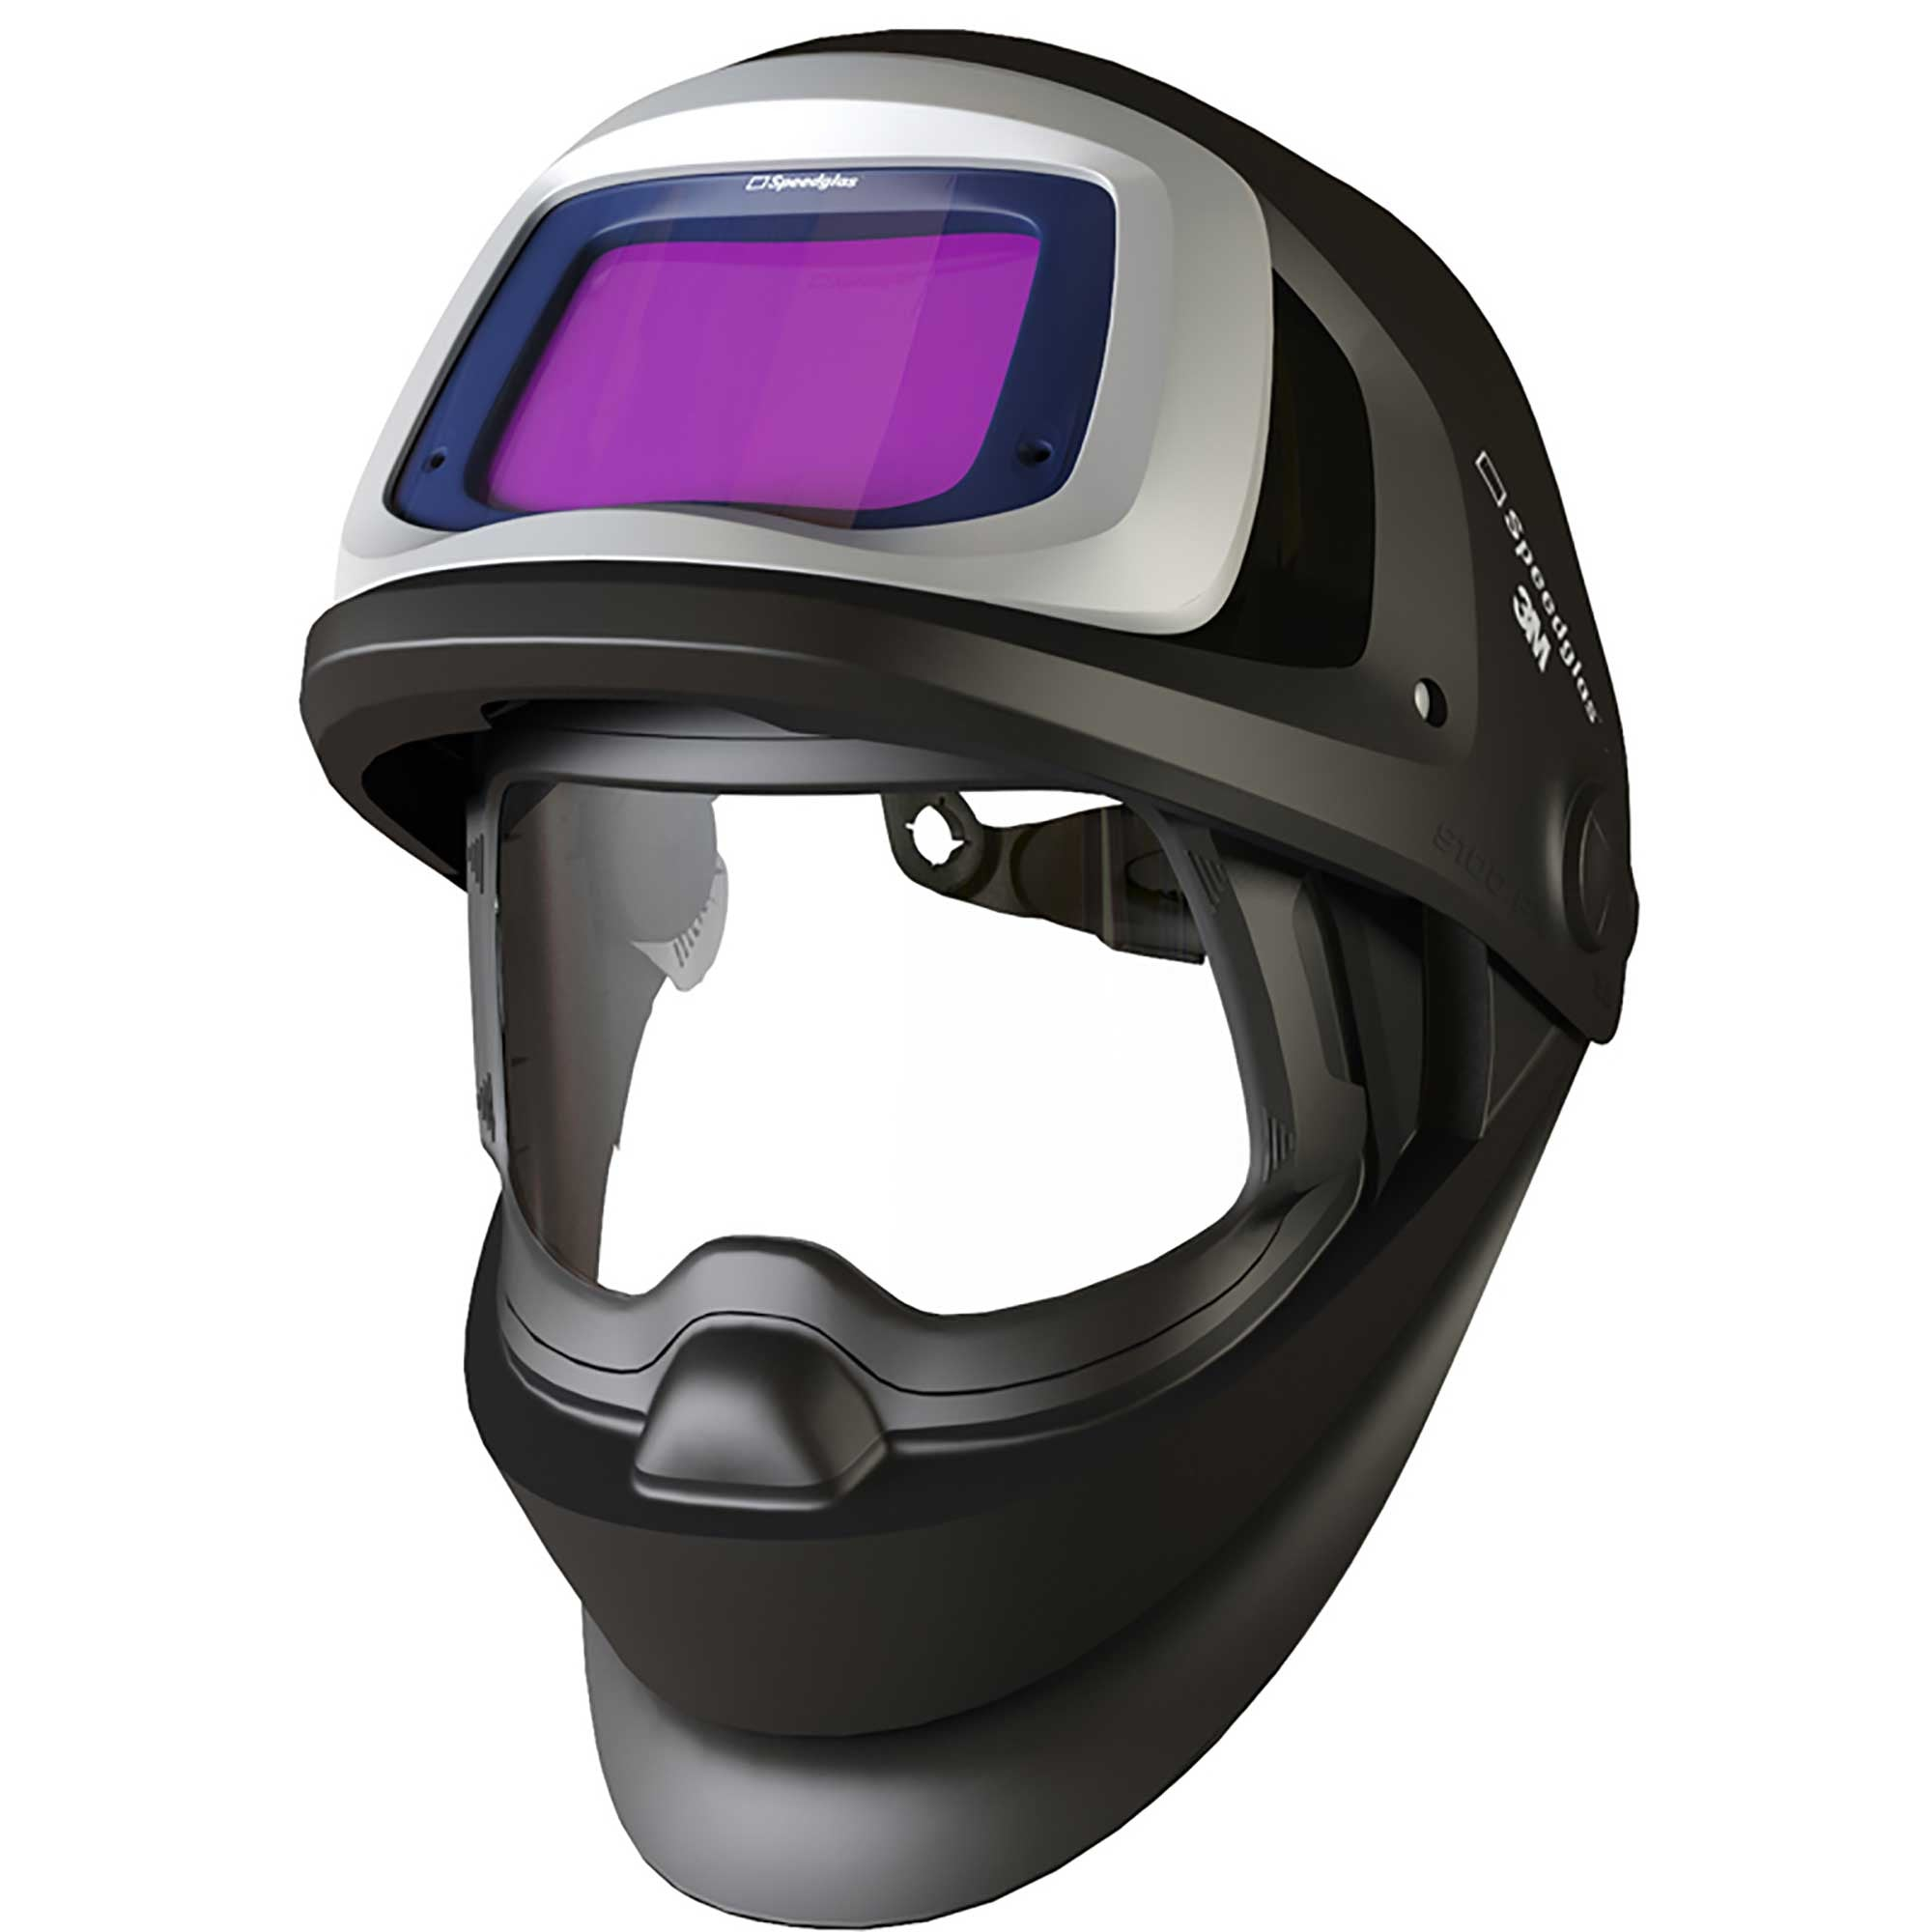 3m speedglas 9100 fx welding helmet 541826 eweld. Black Bedroom Furniture Sets. Home Design Ideas